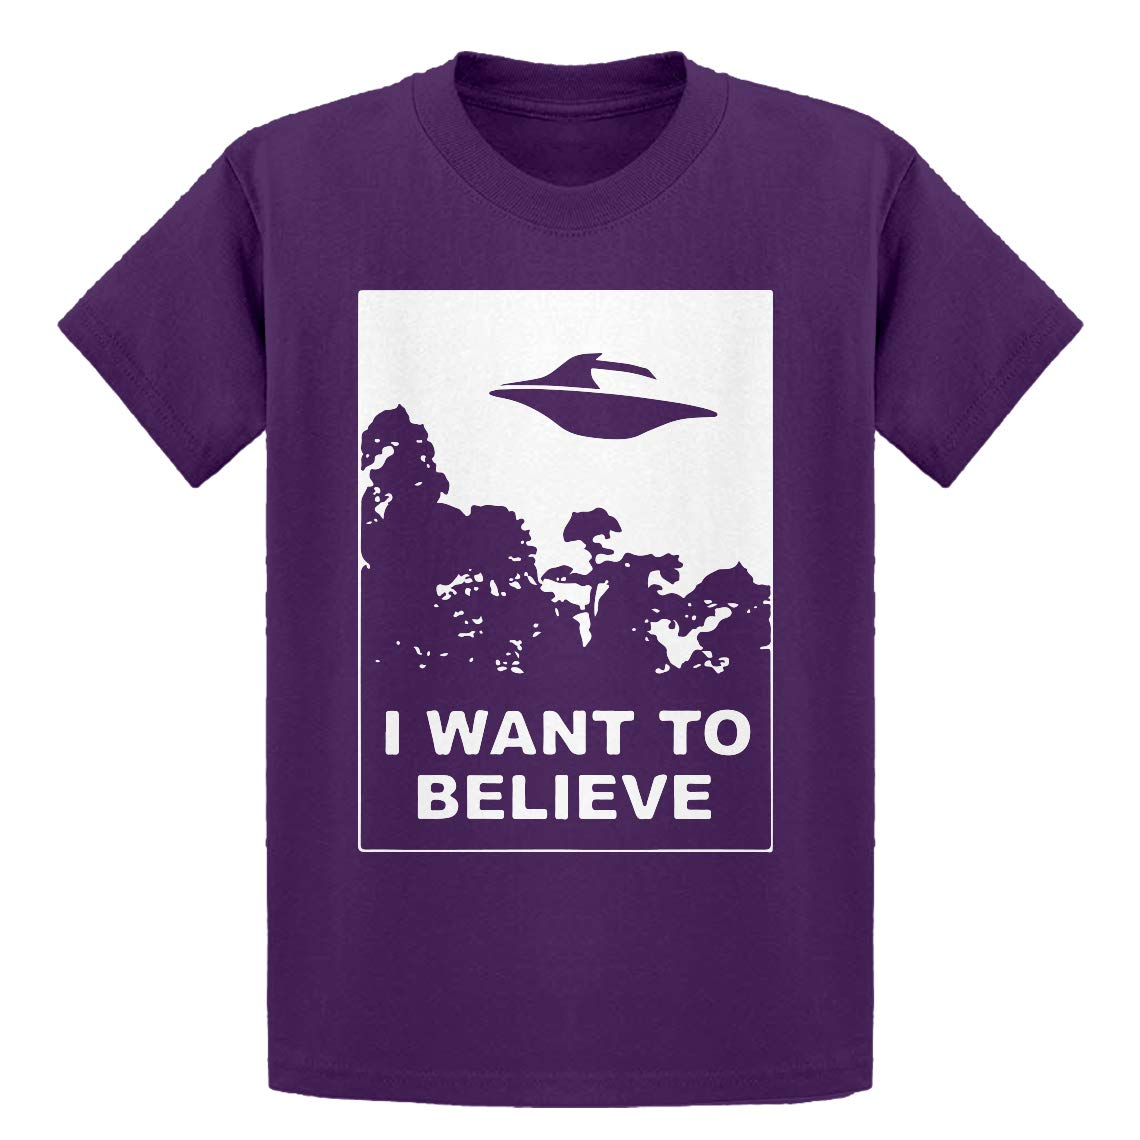 Indica Plateau Youth I Want to Believe Kids T-Shirt